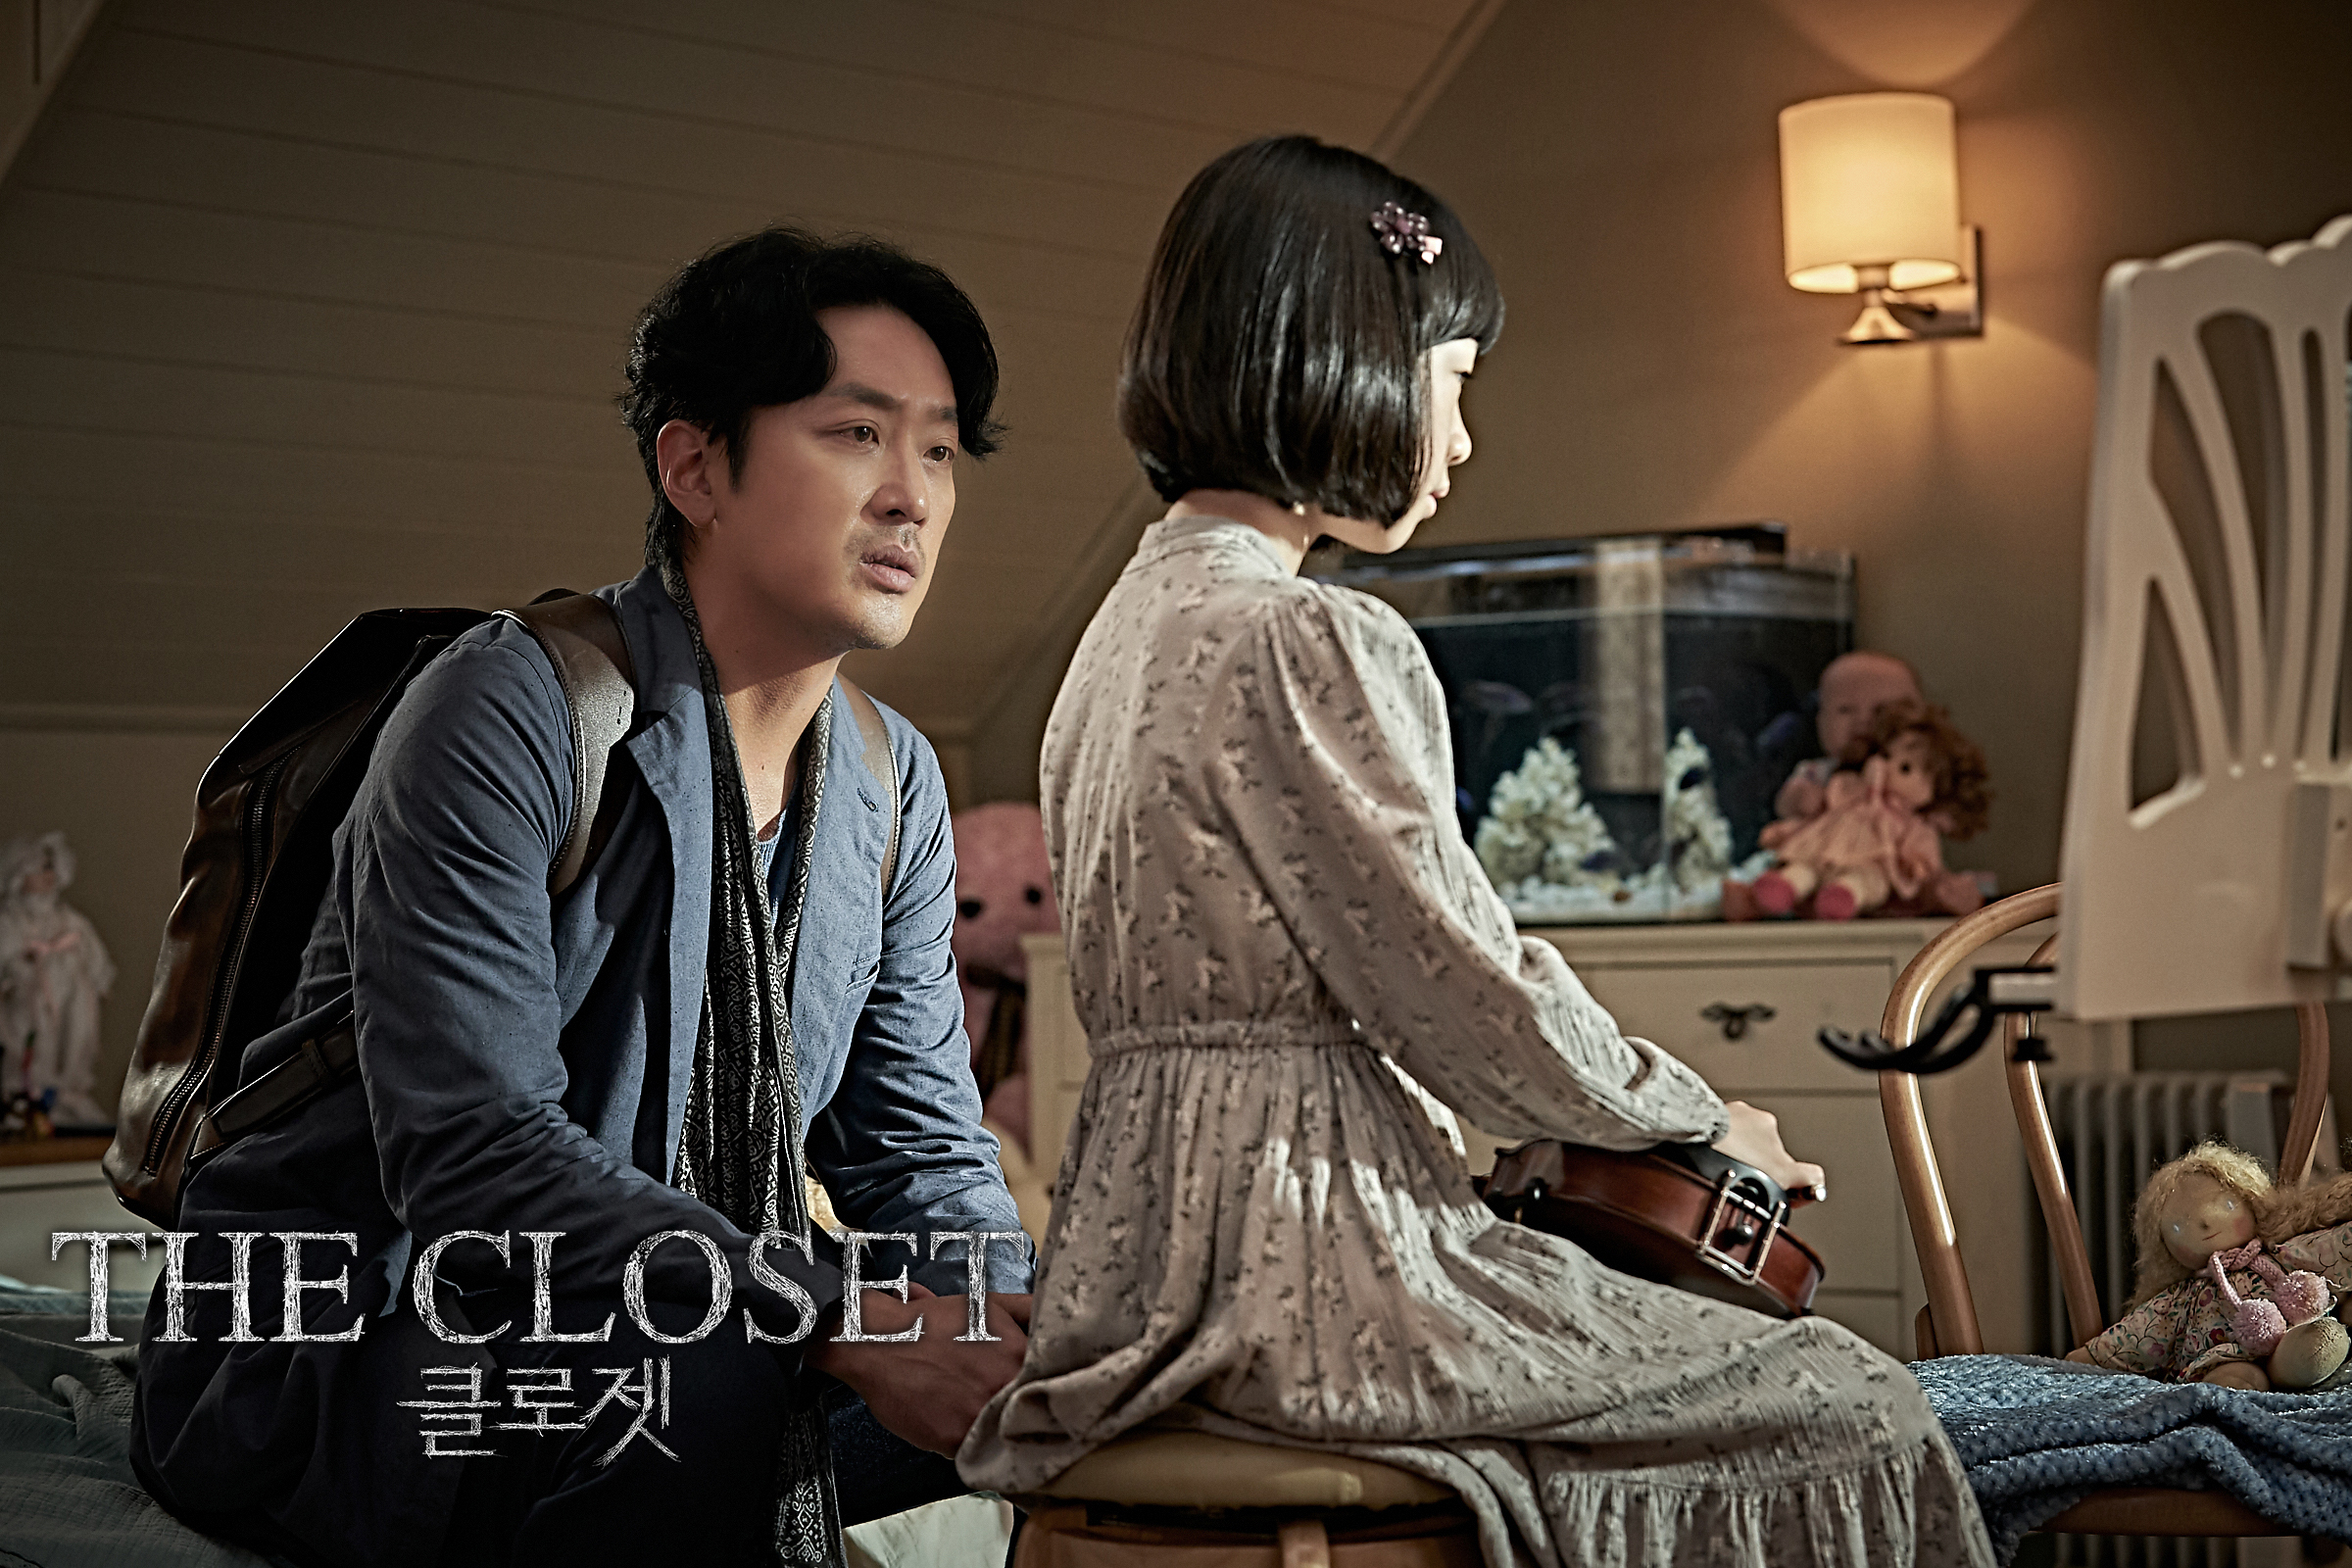 GSC Movies | Ha Jung Woo horror debut in The Closet | 3